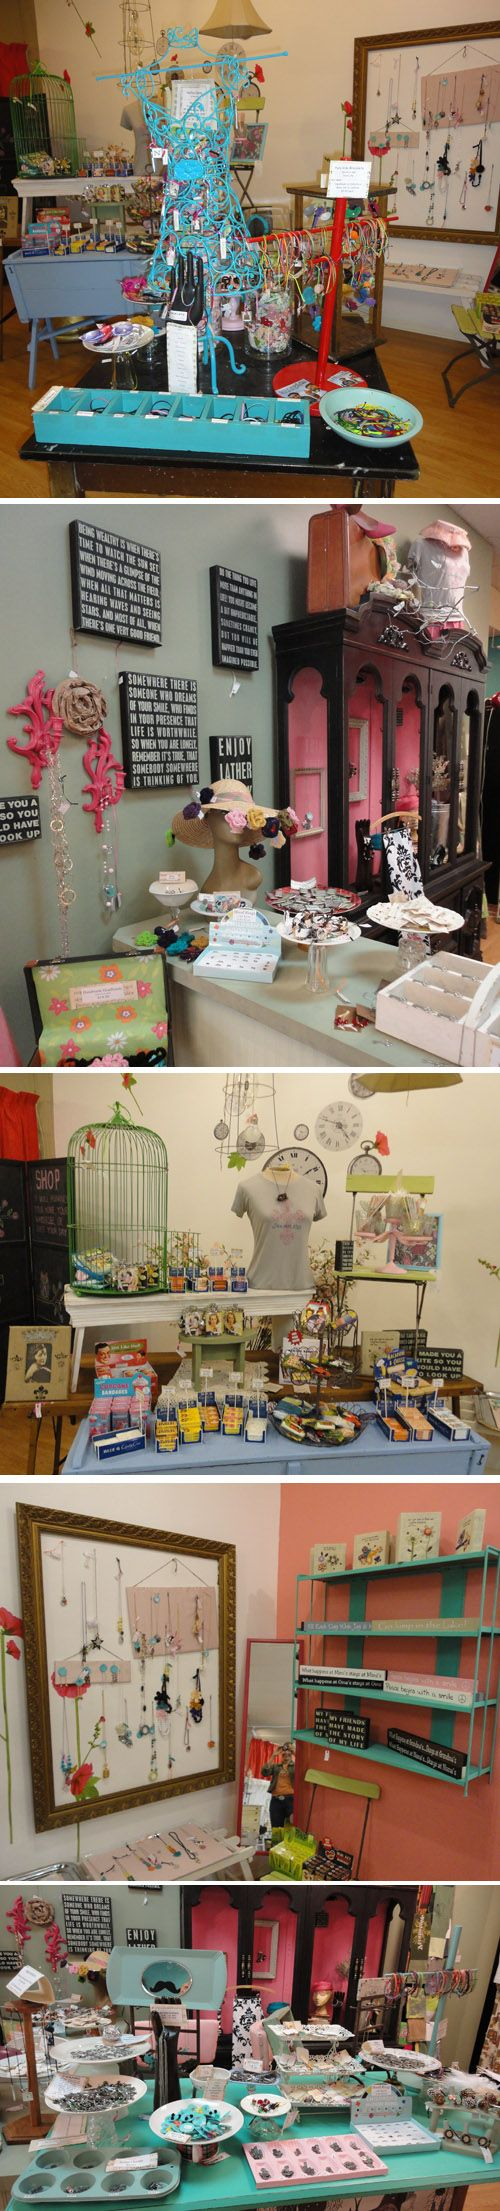 karla's place in holland michigan store display ideas